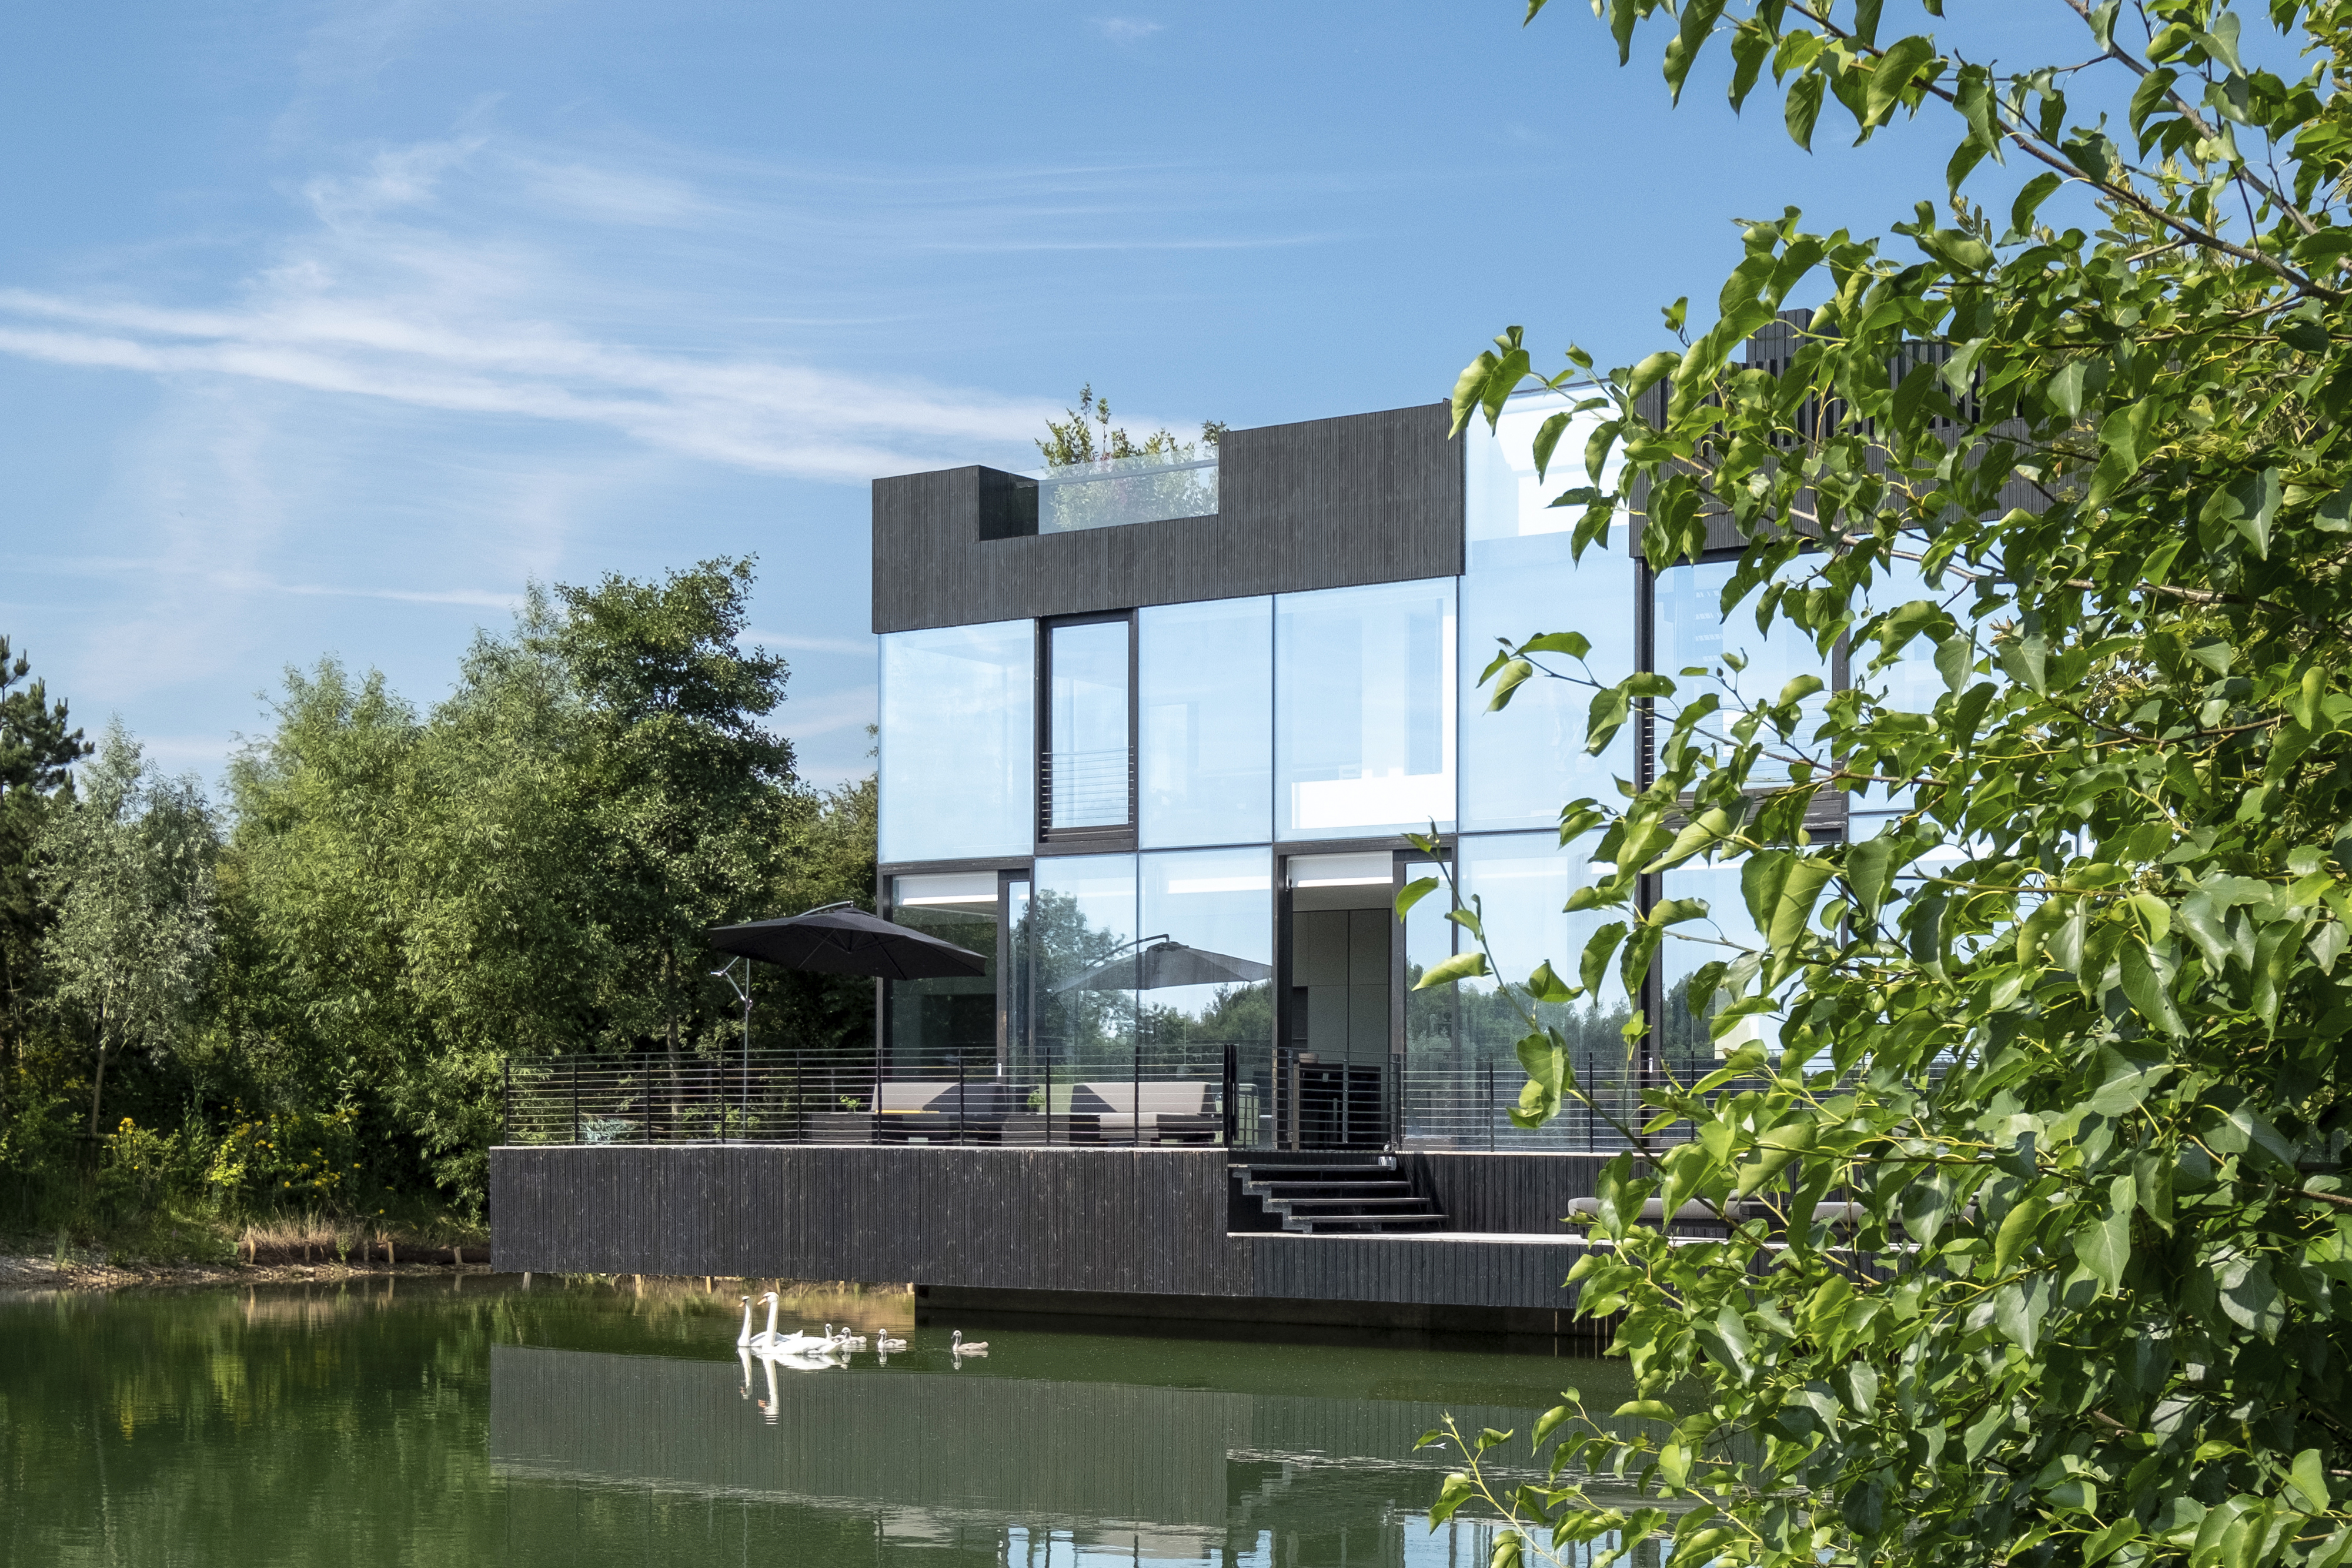 <p>Villa in the Lake, Lechlade (UK) &#8211; Mecanoo. Beeld Blue Sky Images</p>